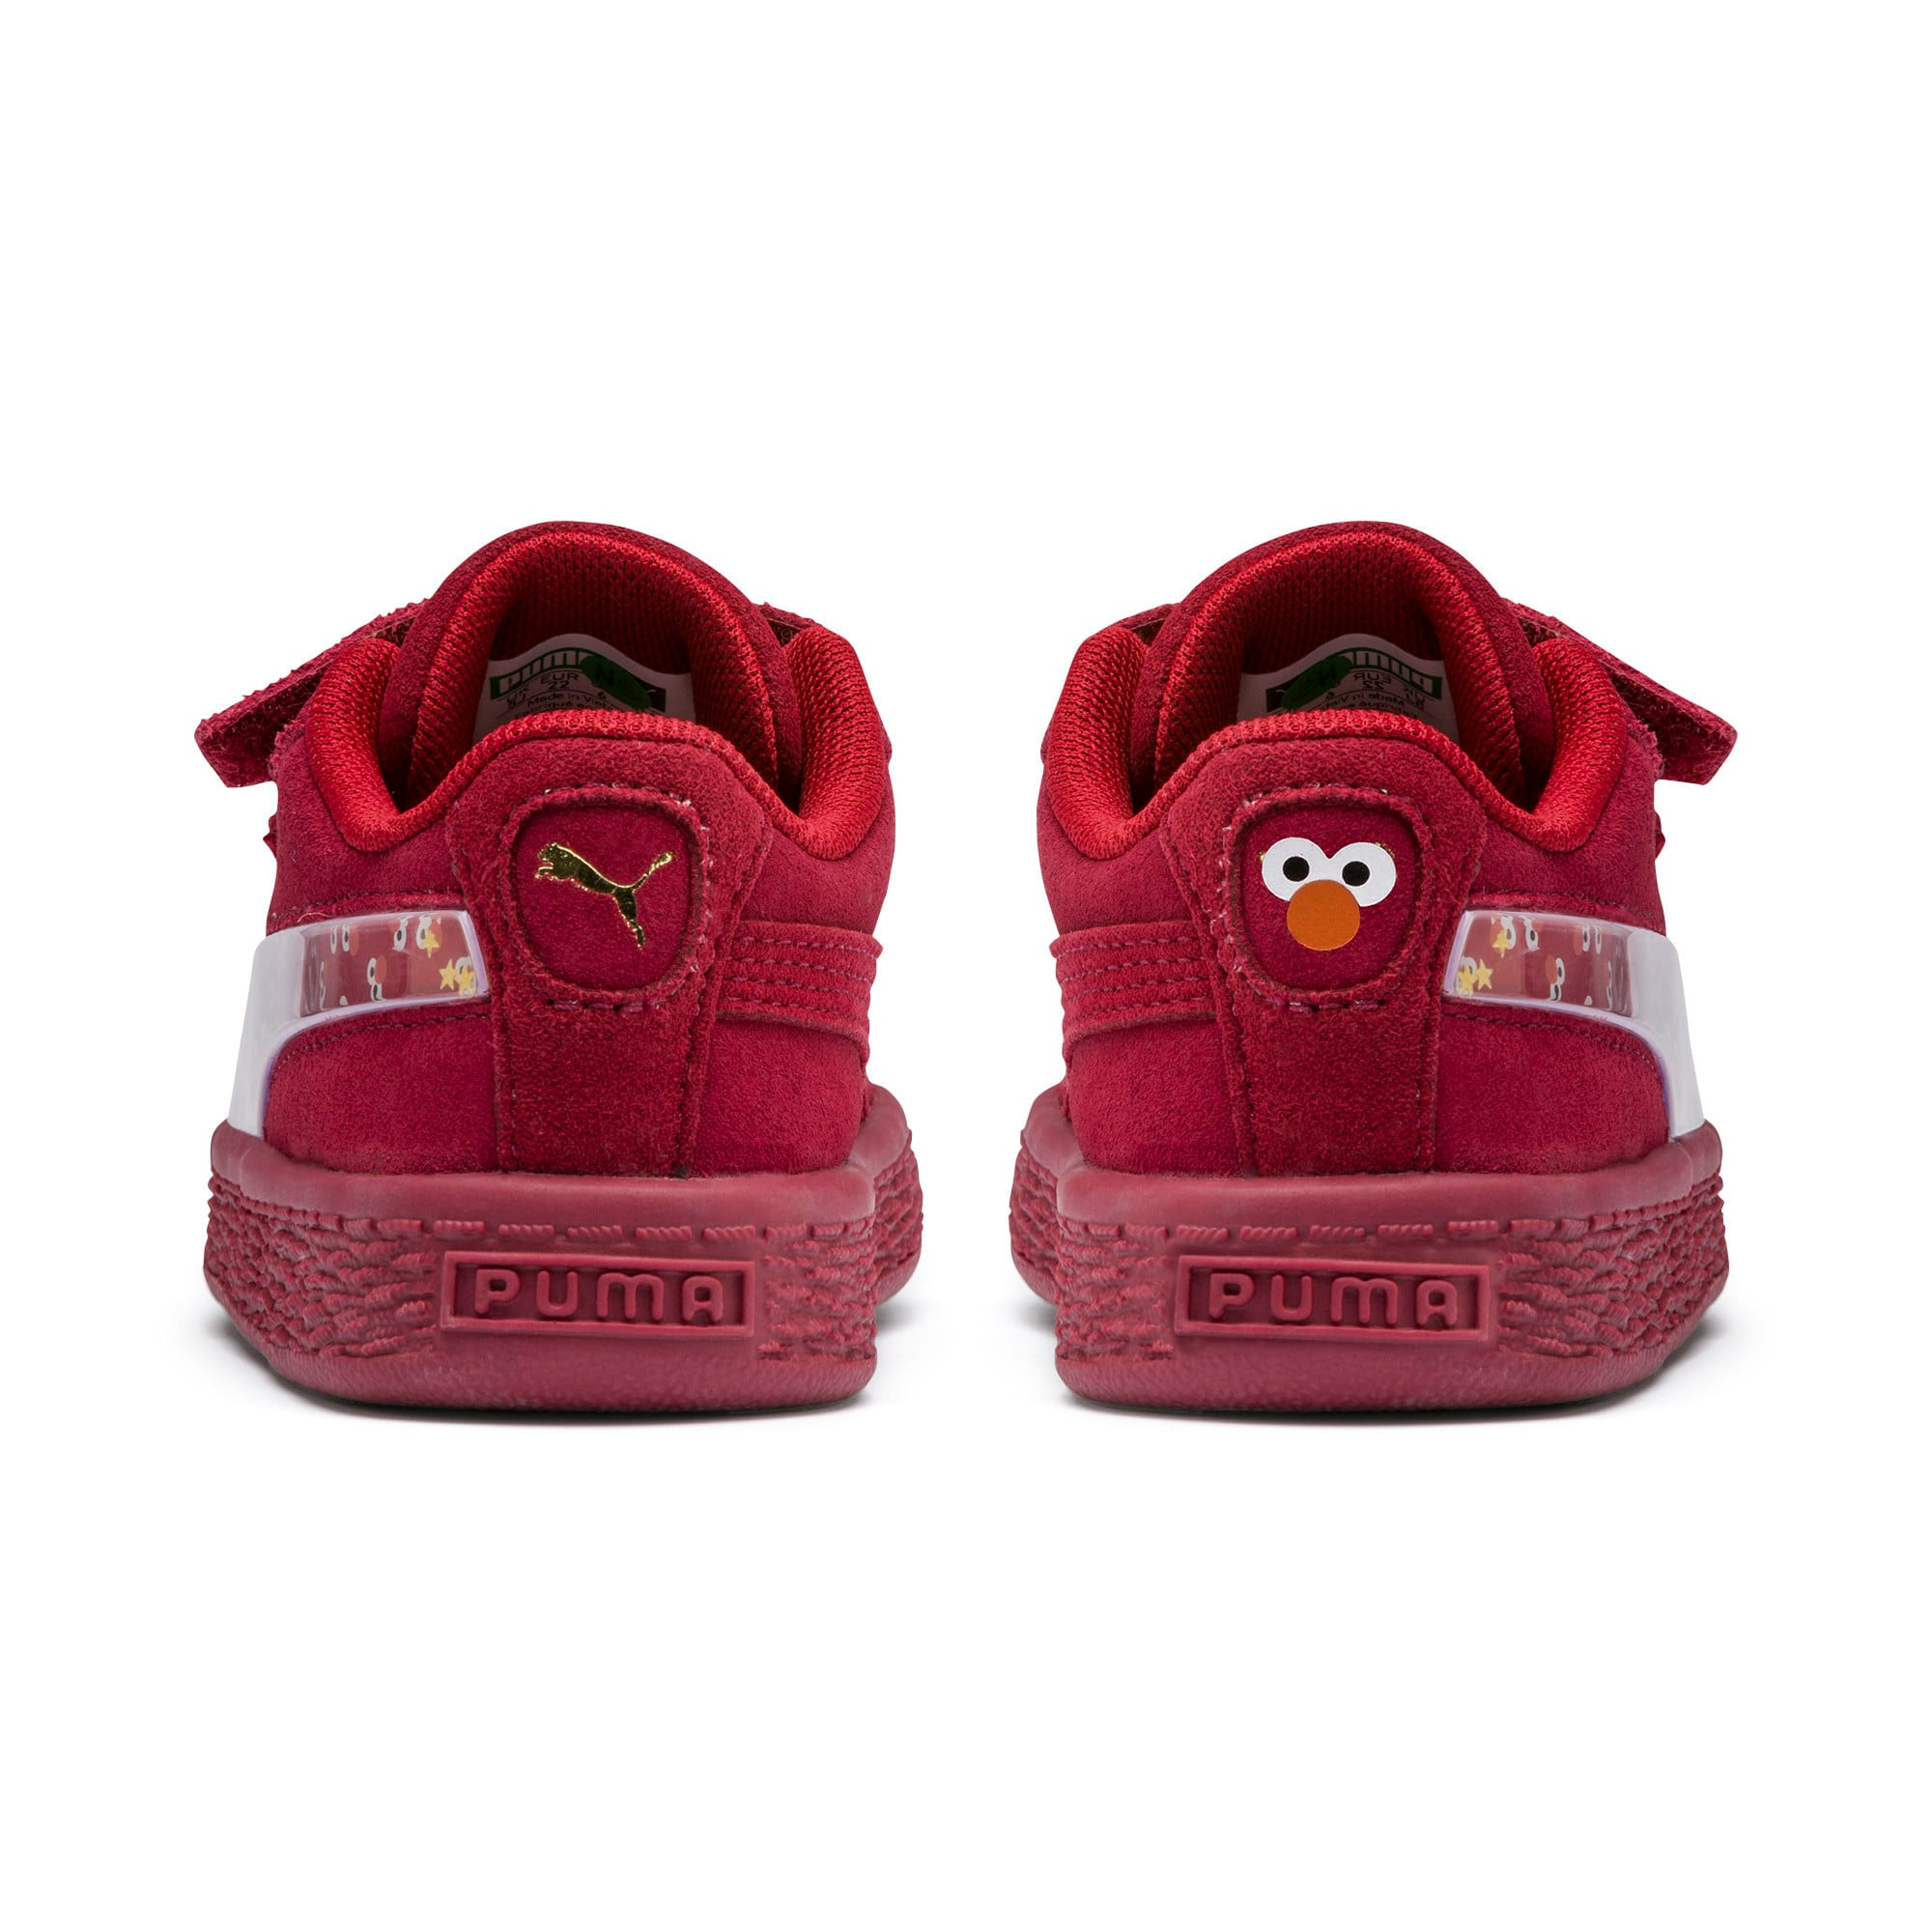 Thumbnail 3 of Sesame Street 50 Suede Statement Babies' Trainers, Rhubarb-Puma White, medium